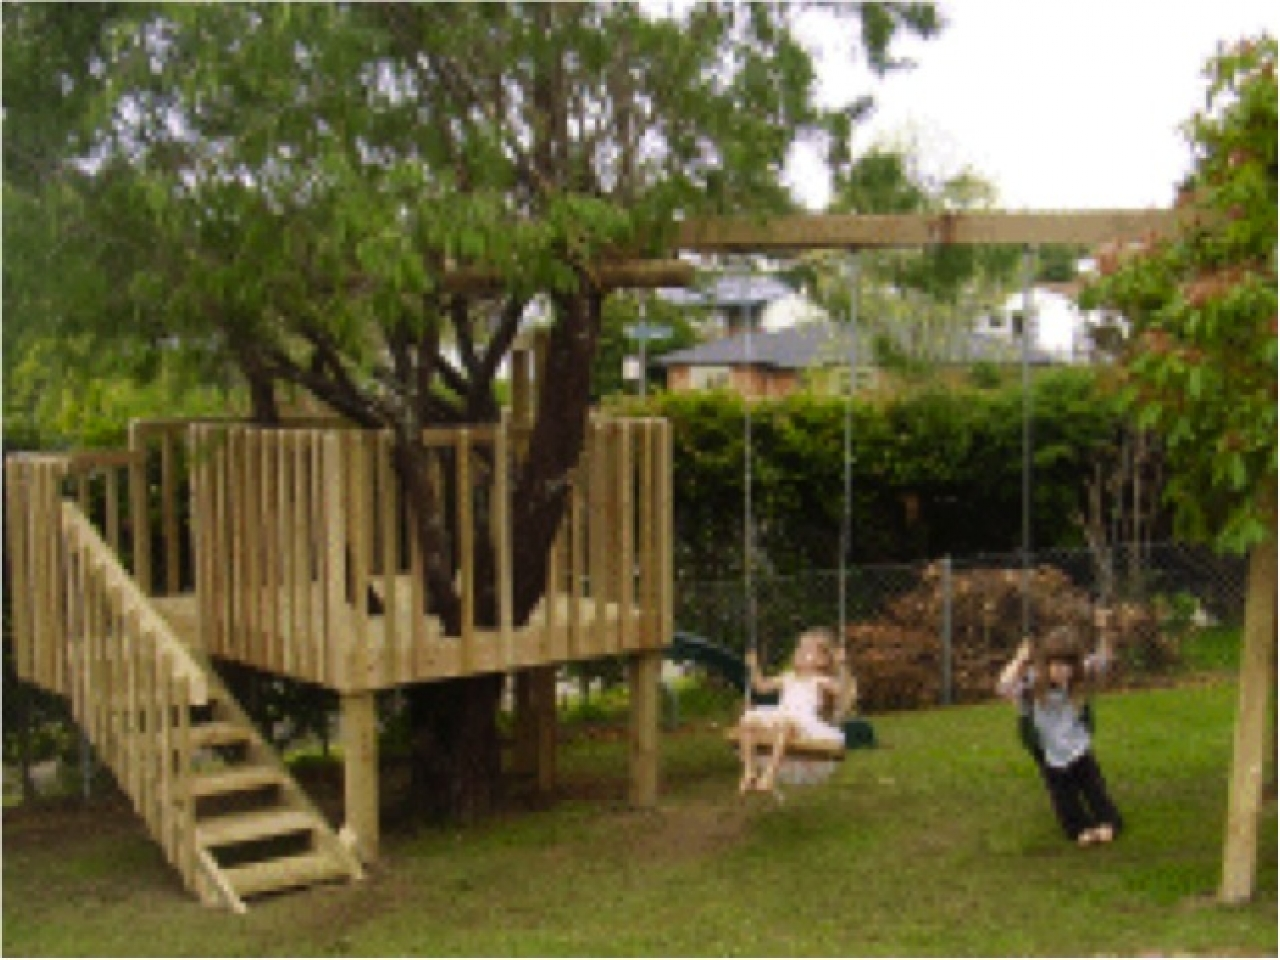 Tree House Hotel Tree House And Swing Set Plans Do It